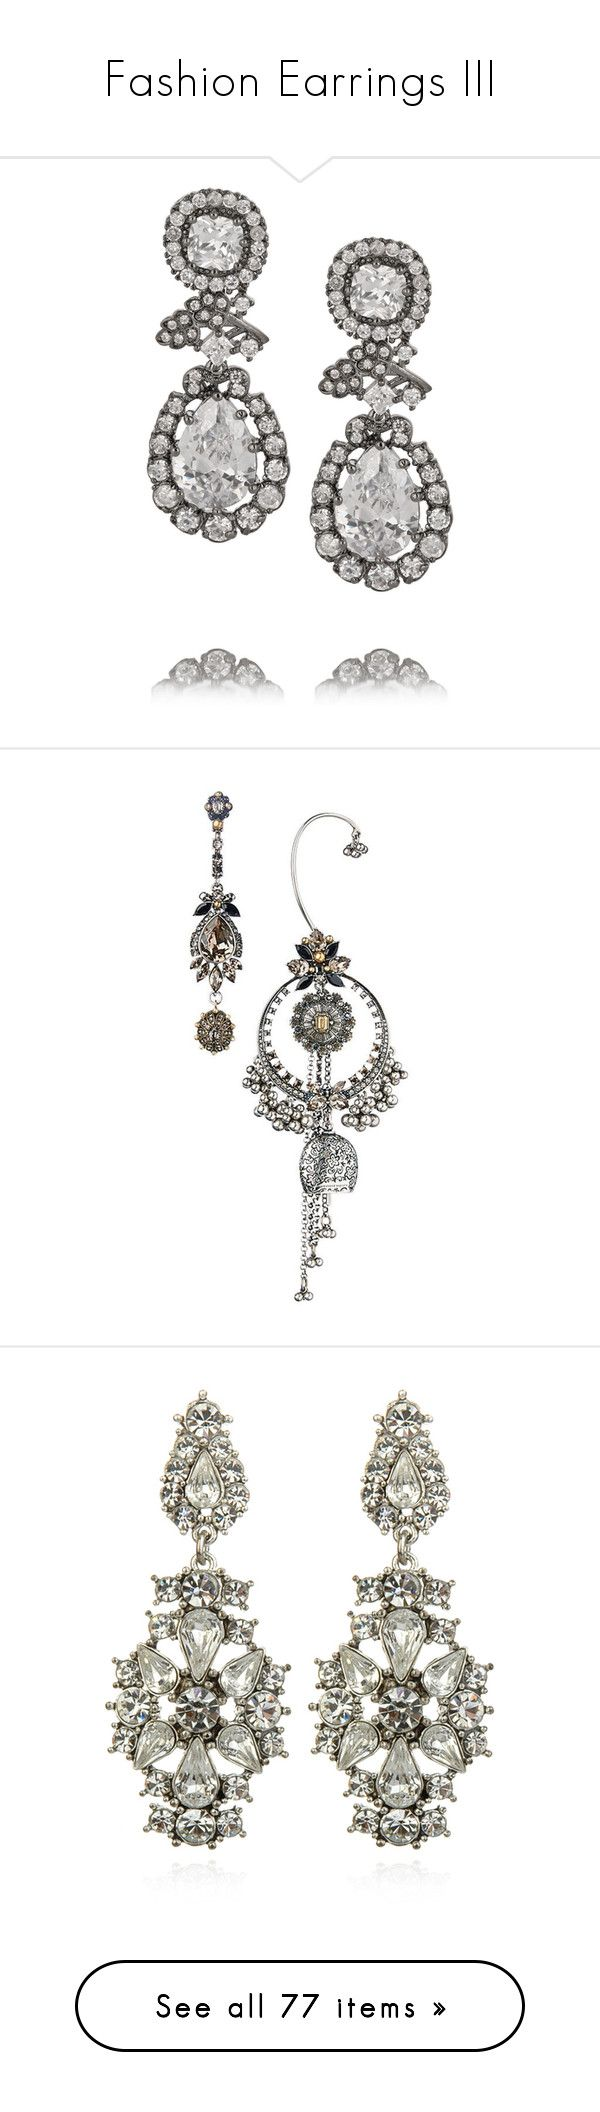 """Fashion Earrings III"" by sakuragirl ❤ liked on Polyvore featuring jewelry, earrings, orecchini, silver, kenneth jay lane jewelry, kenneth jay lane earrings, cz earrings, rhodium plated jewelry, cz jewellery and accessories"